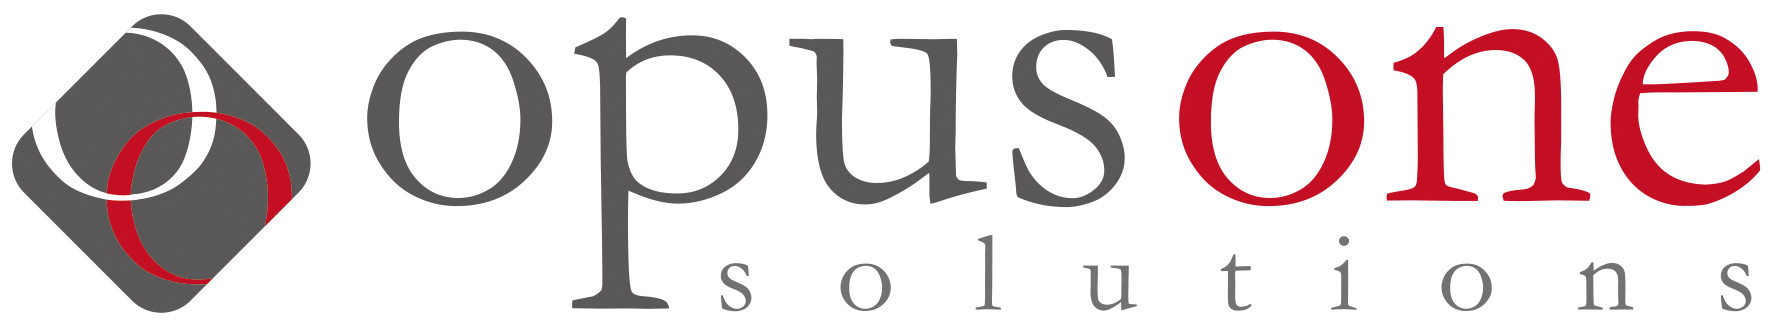 Opus One Solutions deploys first transactive energy management software at Southern California Edison for a DOE demonstration project